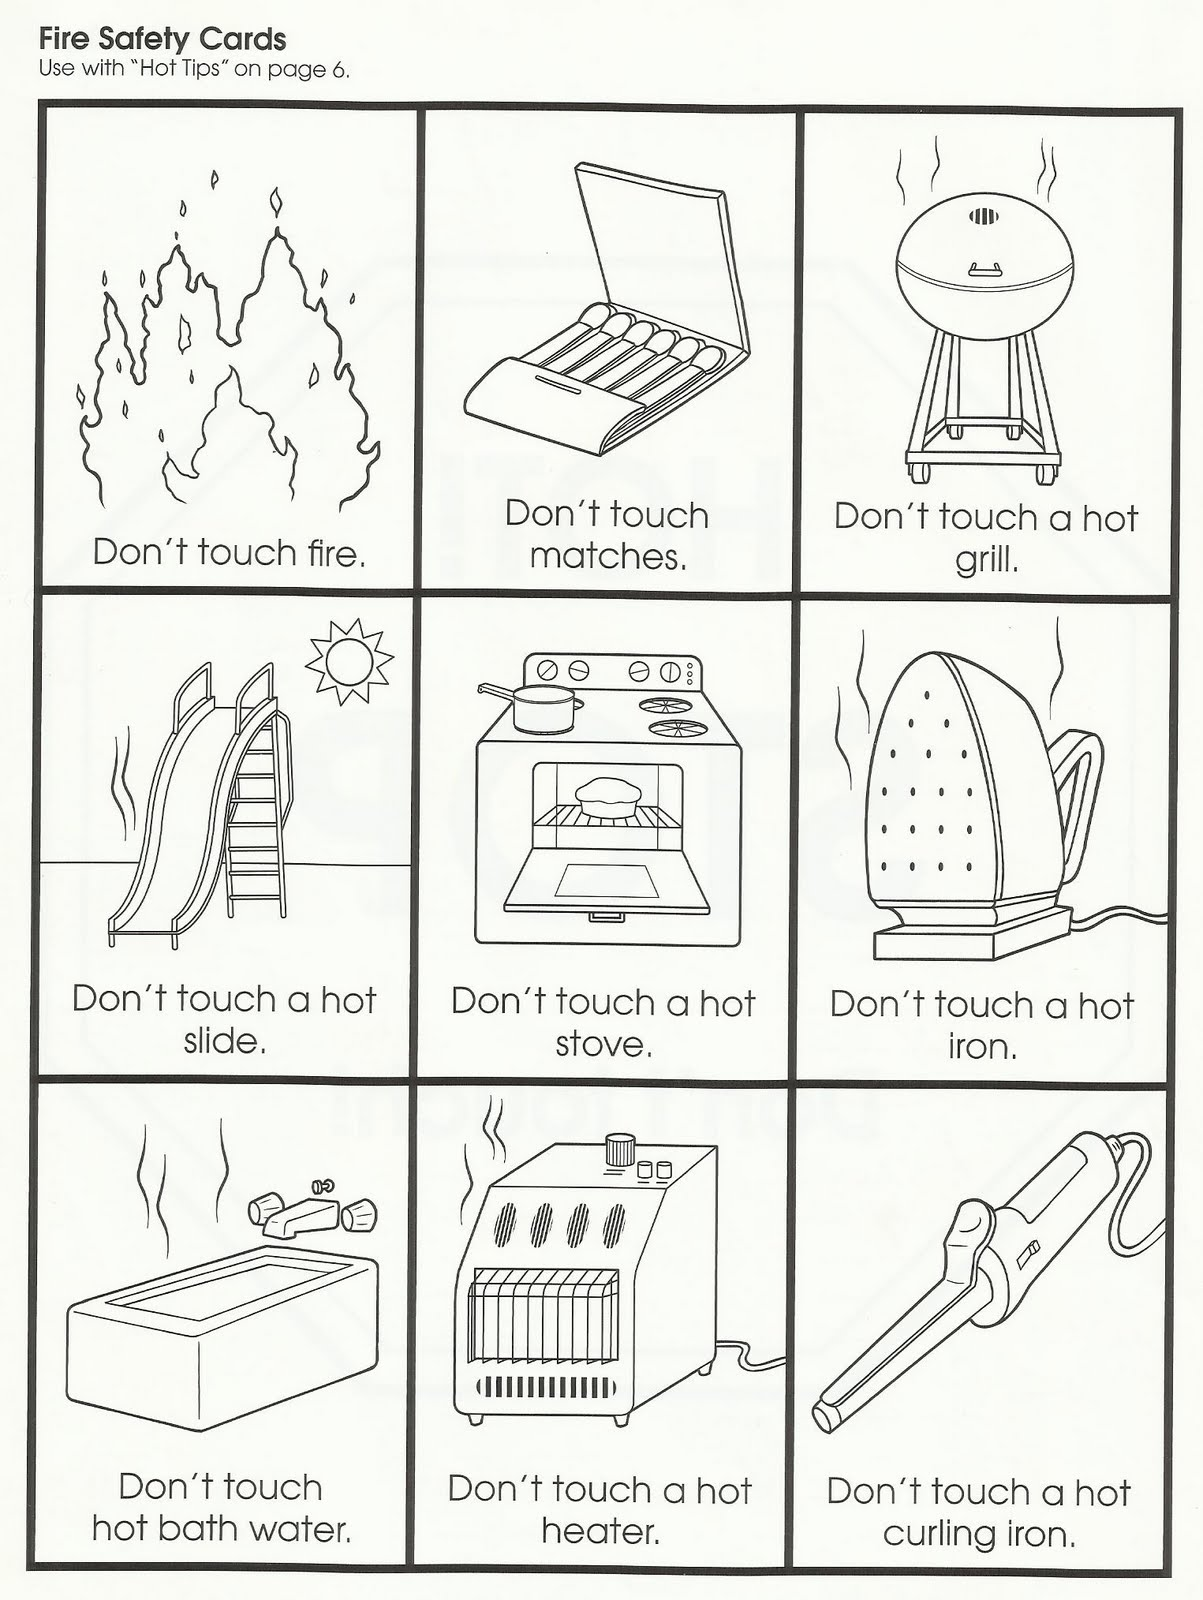 Fire Safety Worksheets Preschool http://squishideasforpreschool.blogspot.com/2011/11/fire-safety.html